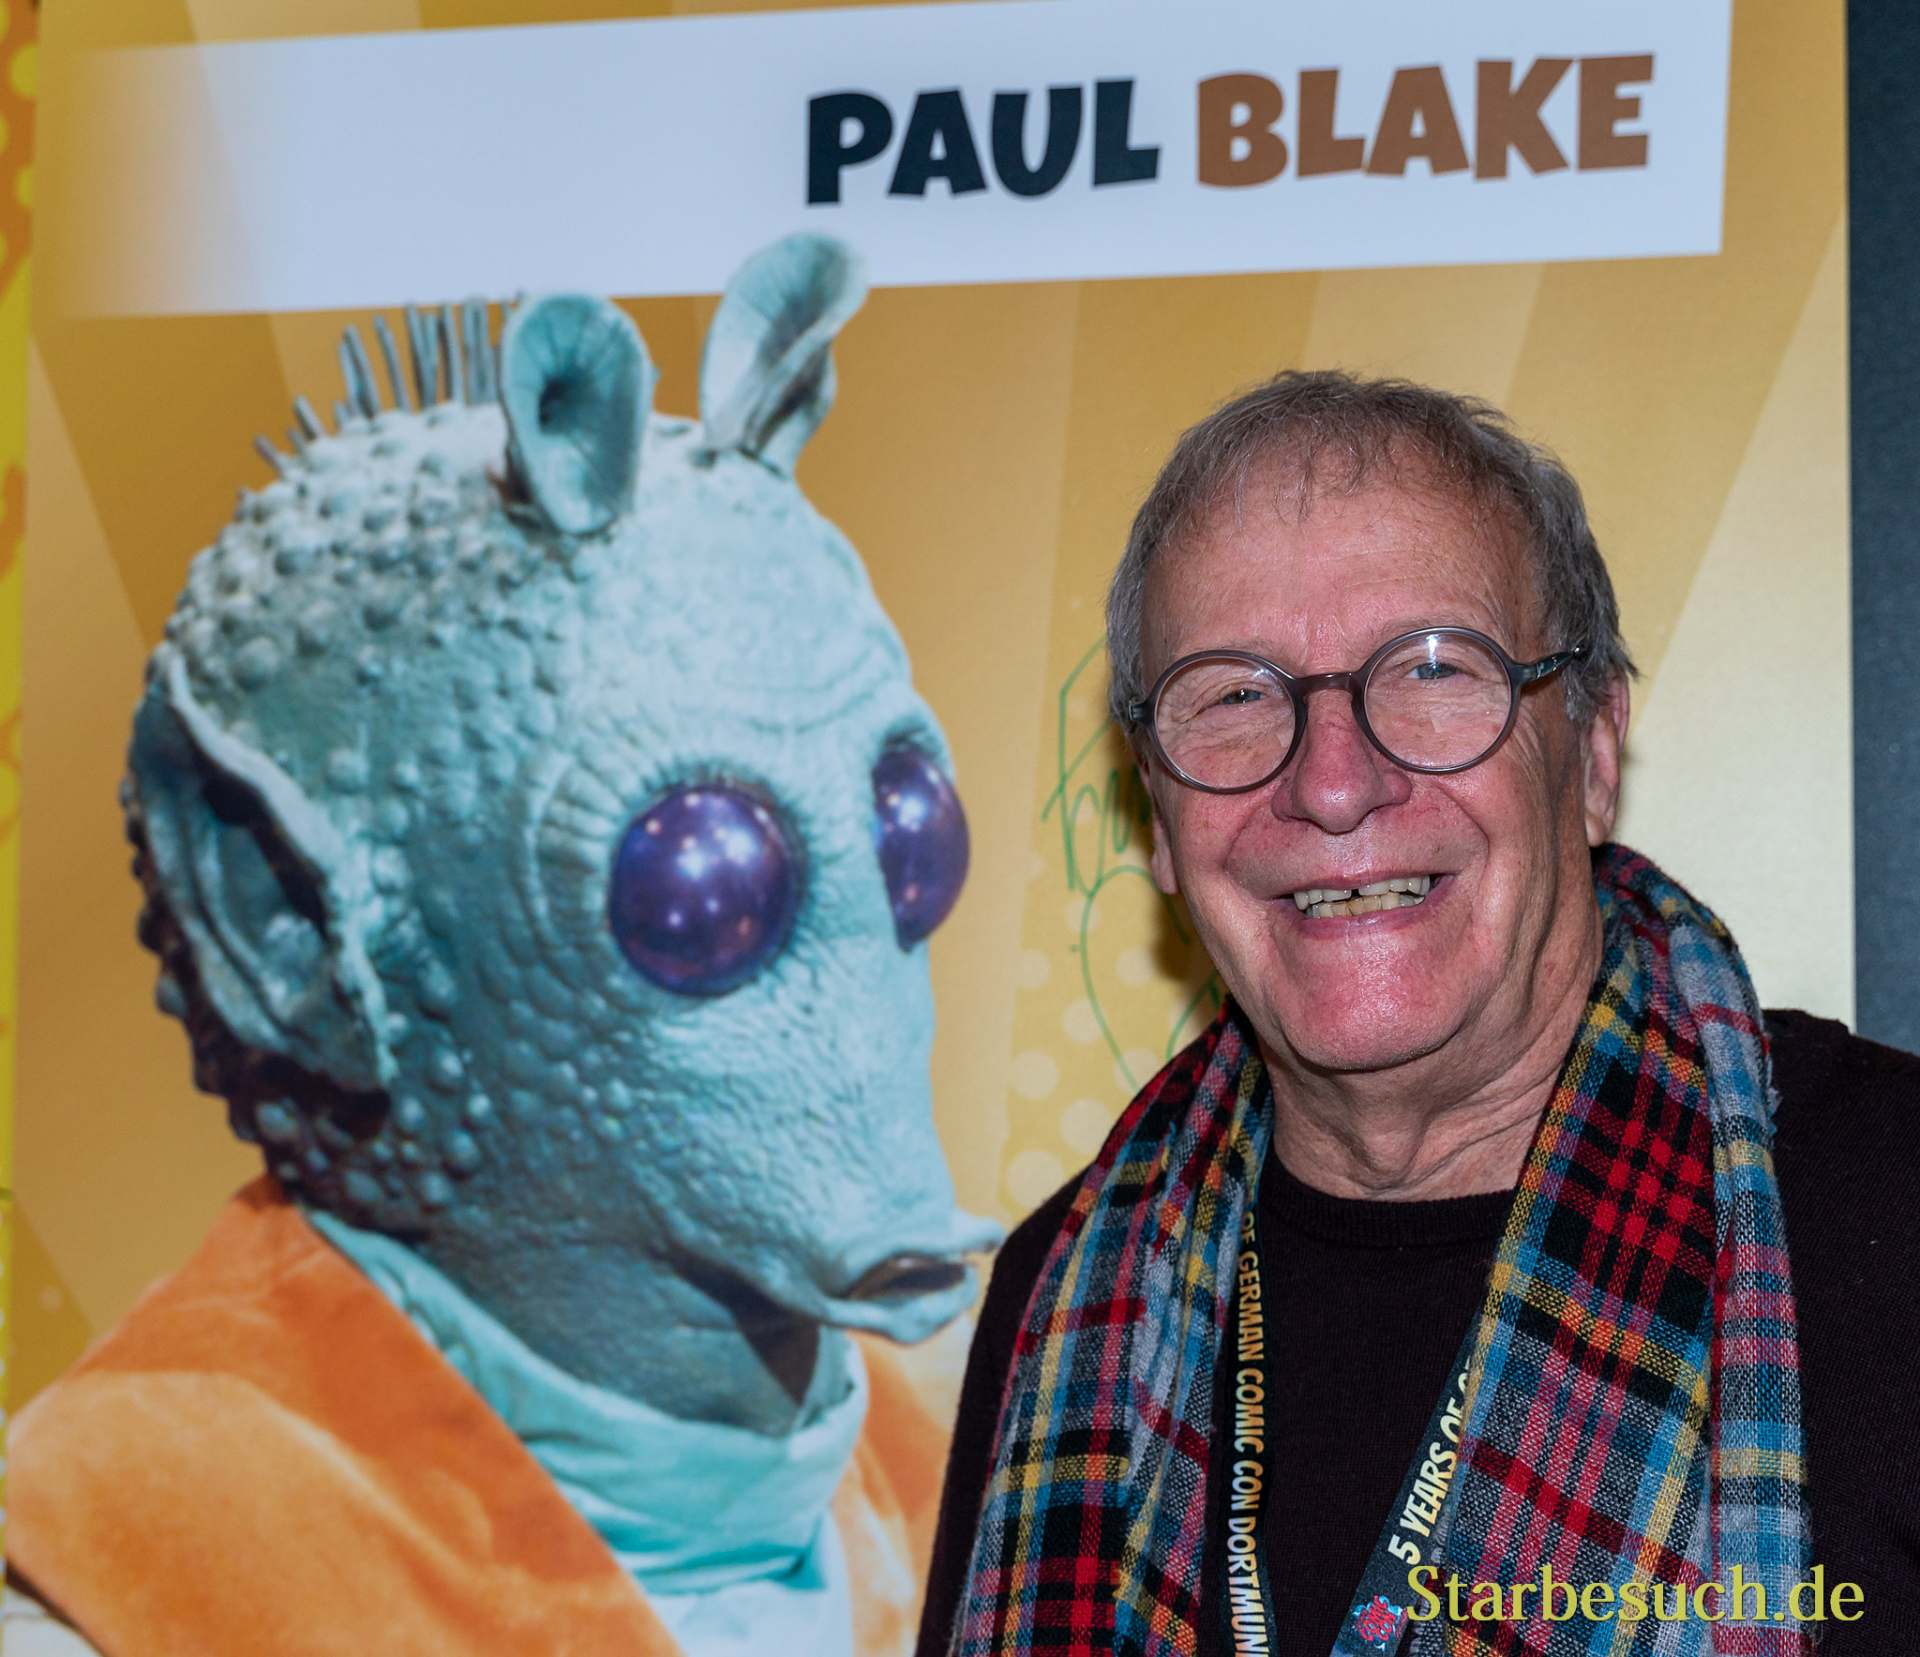 DORTMUND, GERMANY - December 8th 2019: Paul Blake at German Comic Con Dortmund